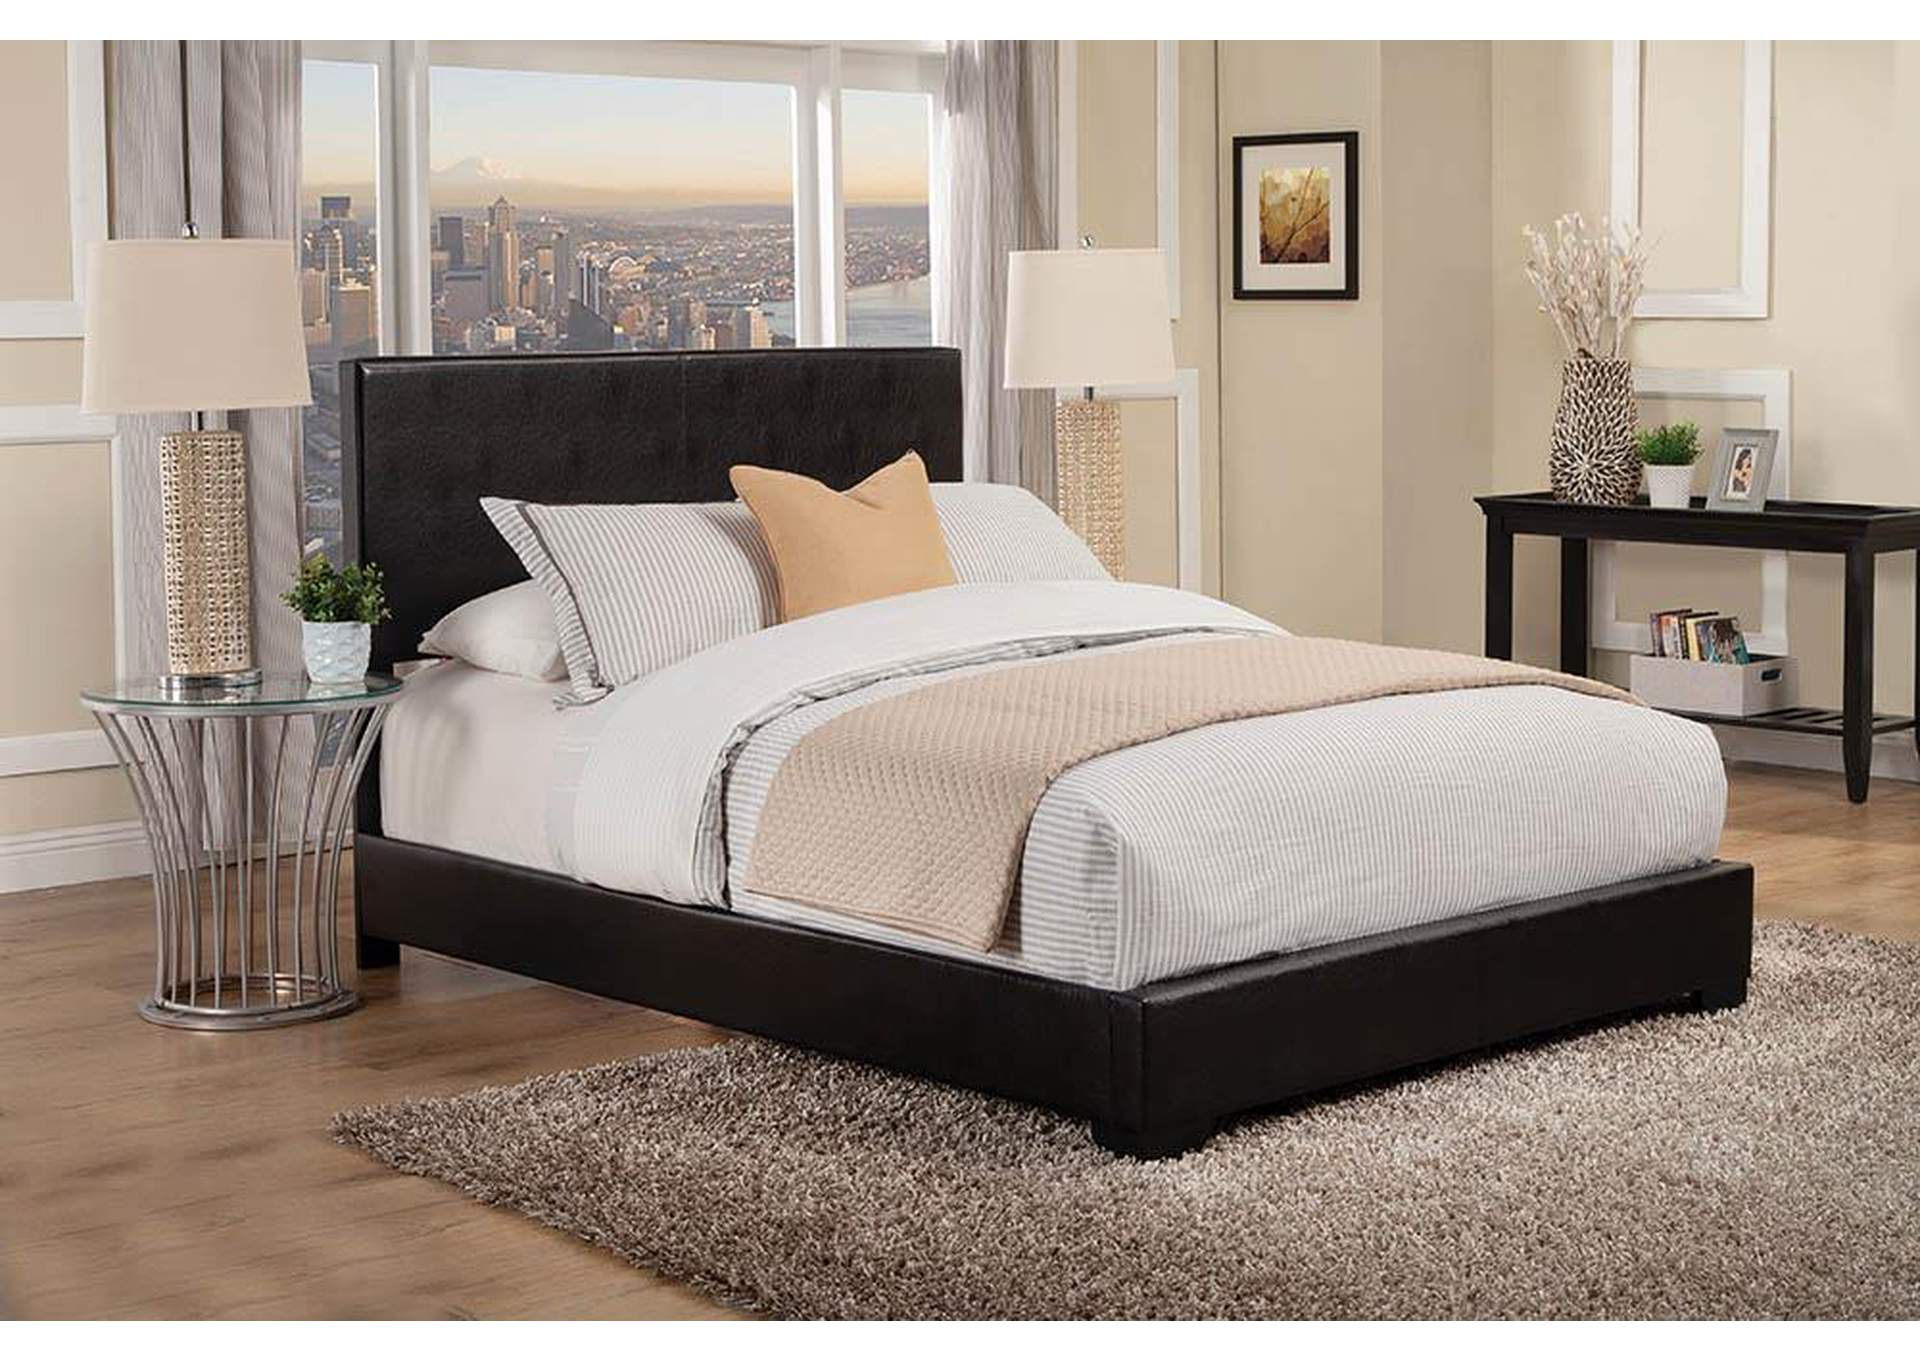 Conner Black Upholstered Queen Platform Bed,Coaster Furniture